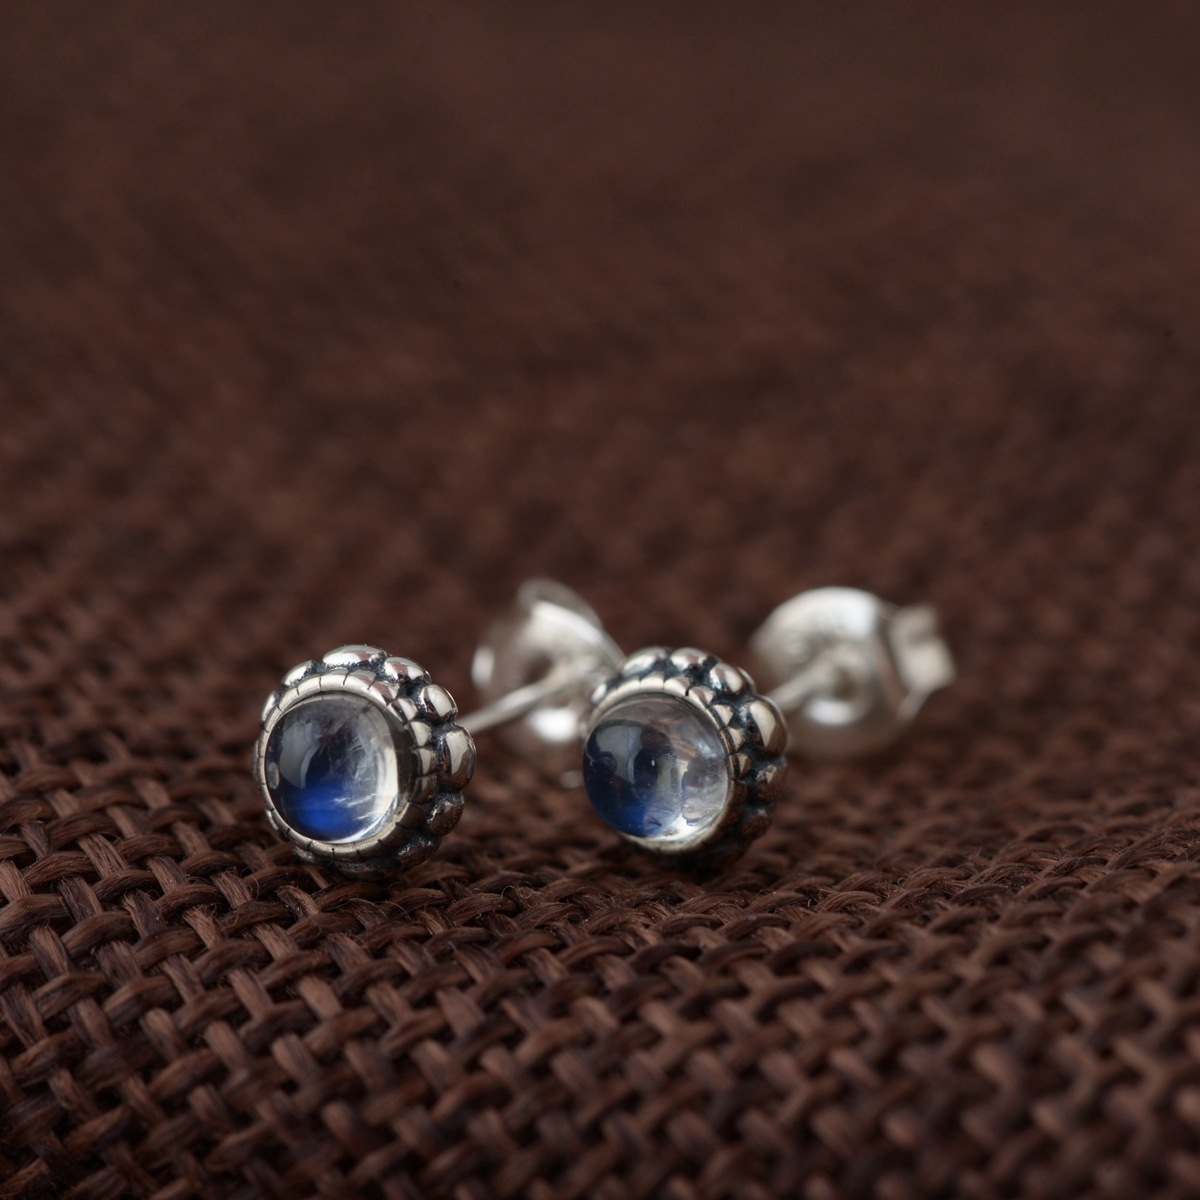 S925 silver antique process Female moonstone simple stud earrings Circular fine wholesale